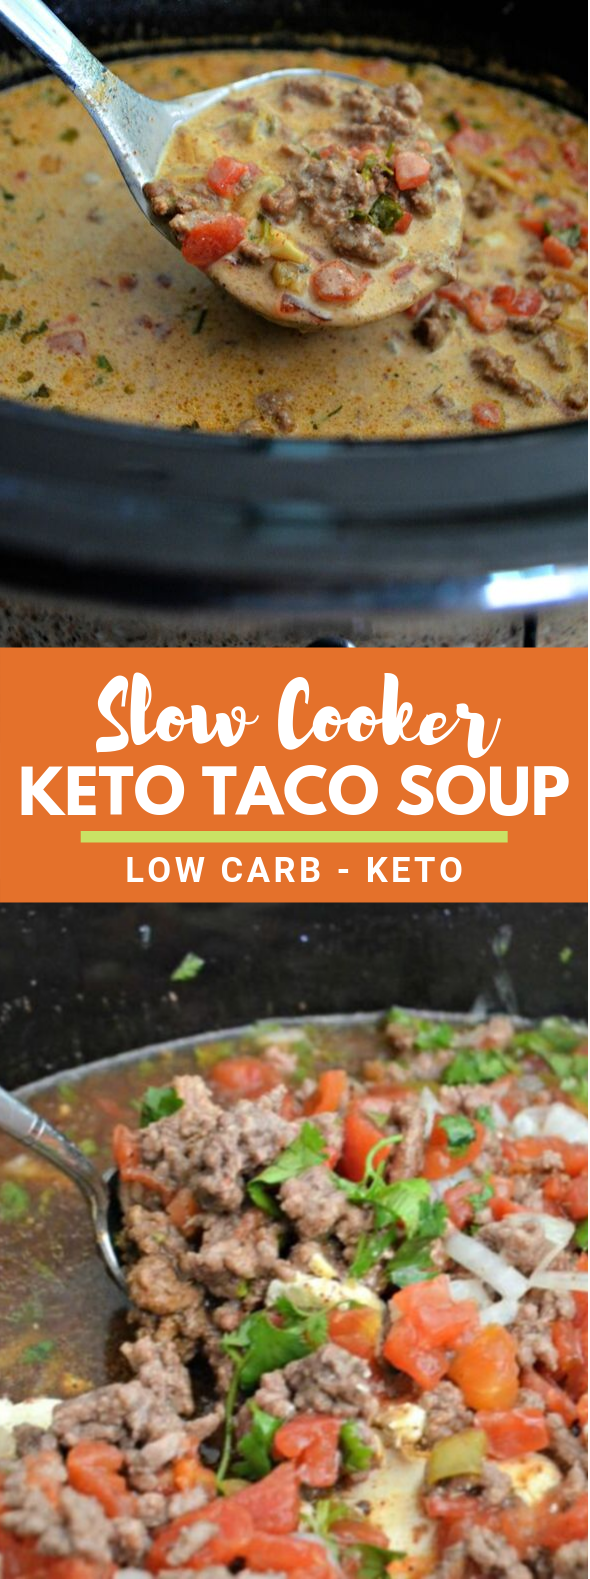 Easy Slow Cooker Keto Taco Soup #healthy #ketodiet